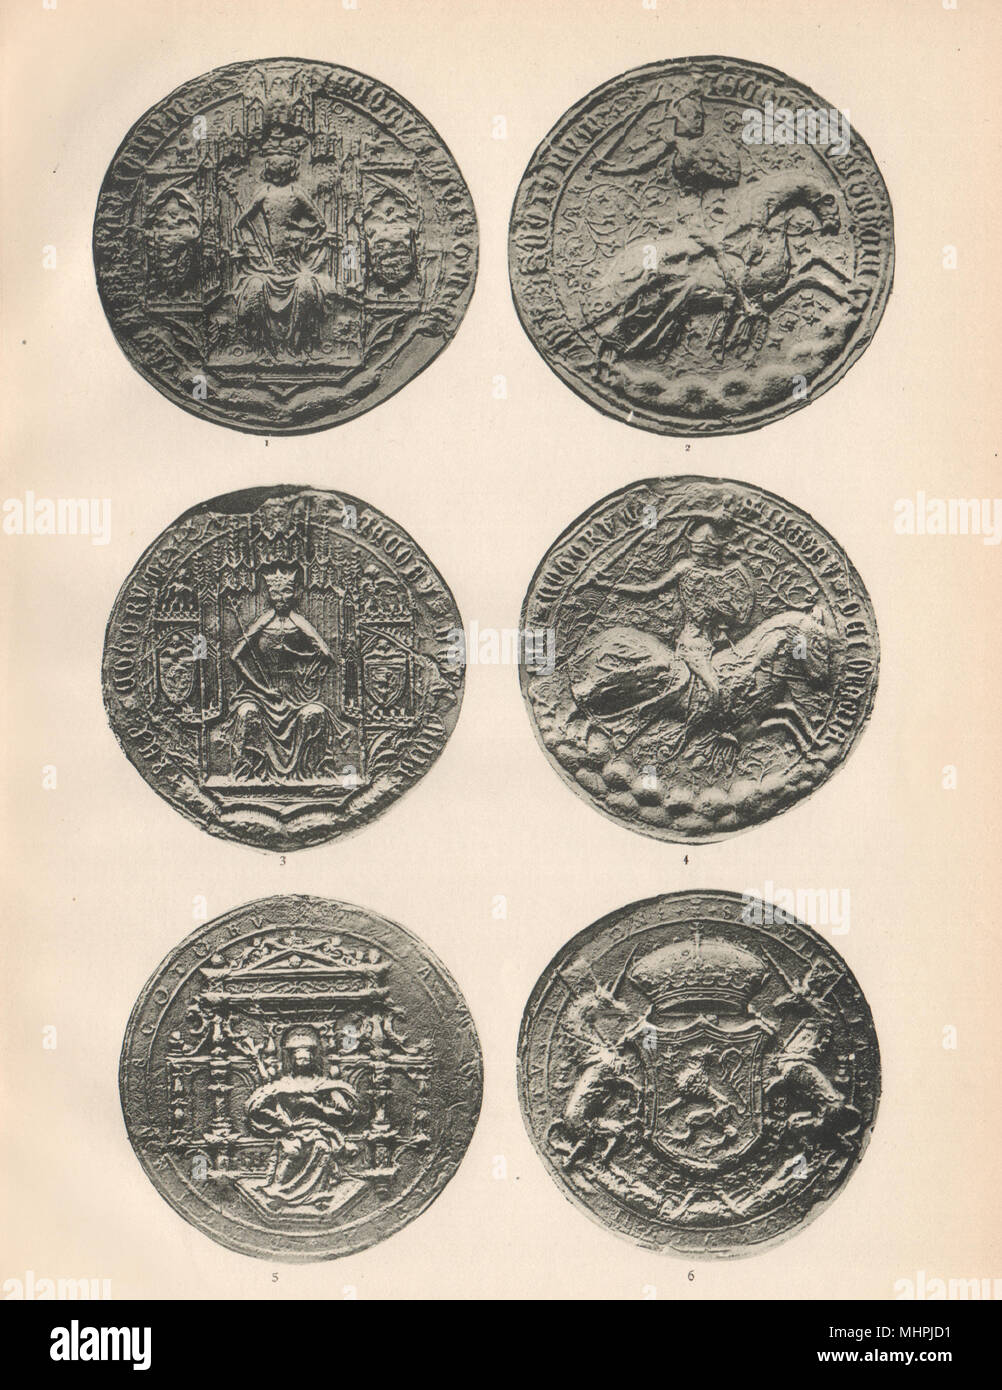 ROYAL SCOTTISH SEALS 1488-1567. James IV. James V. Mary, Queen of Scots 1907 - Stock Image